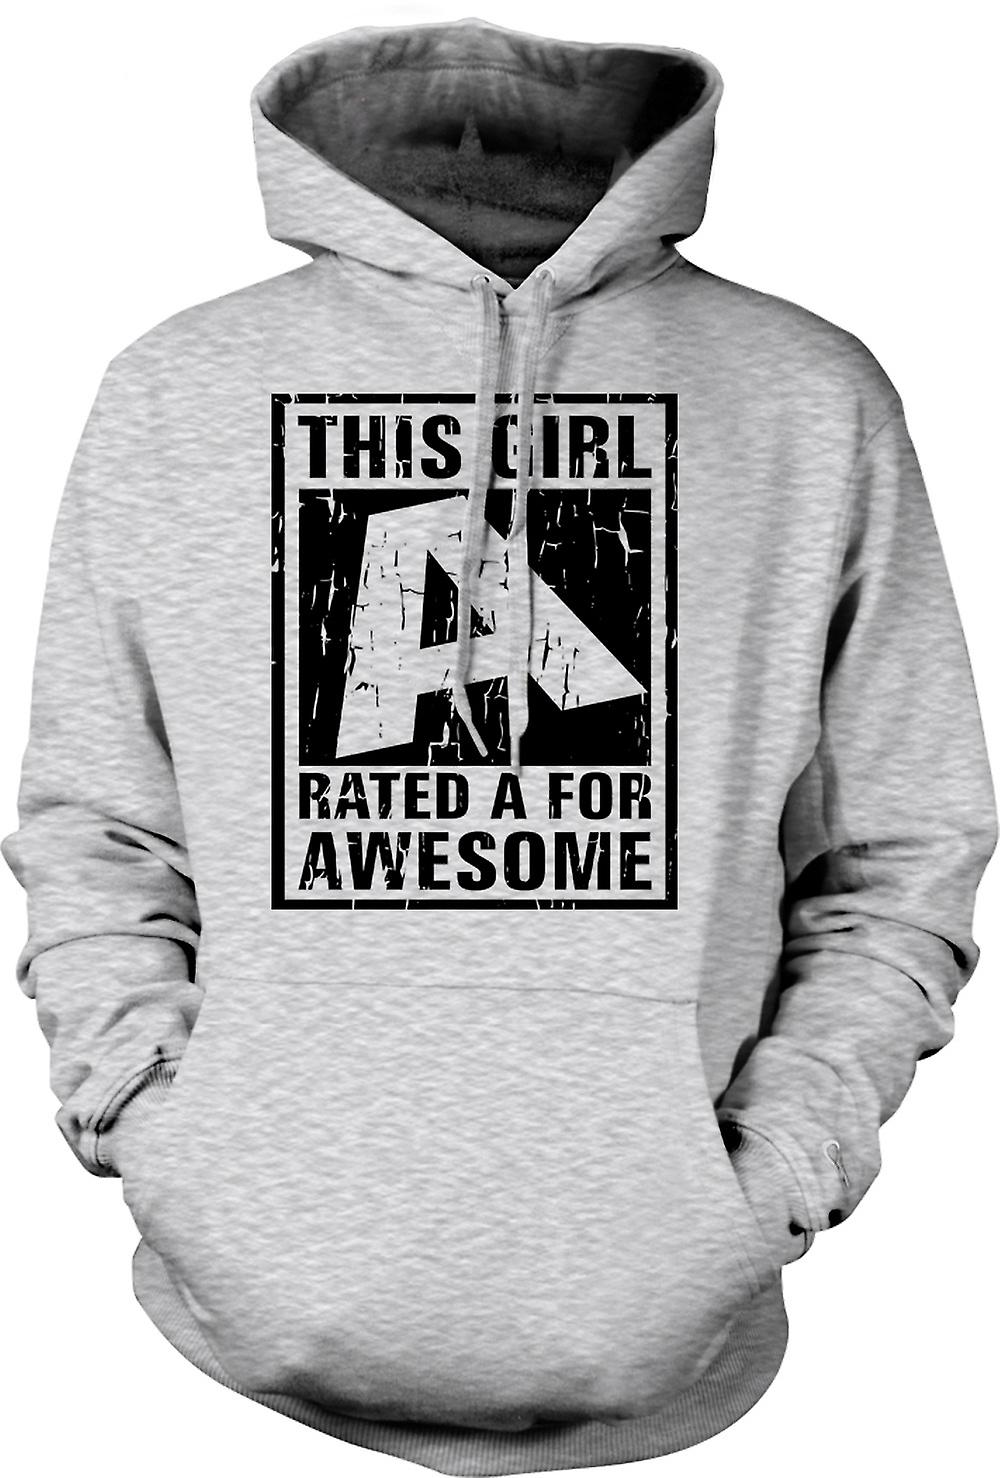 Mens Hoodie - This Girl Rated A For Awesome